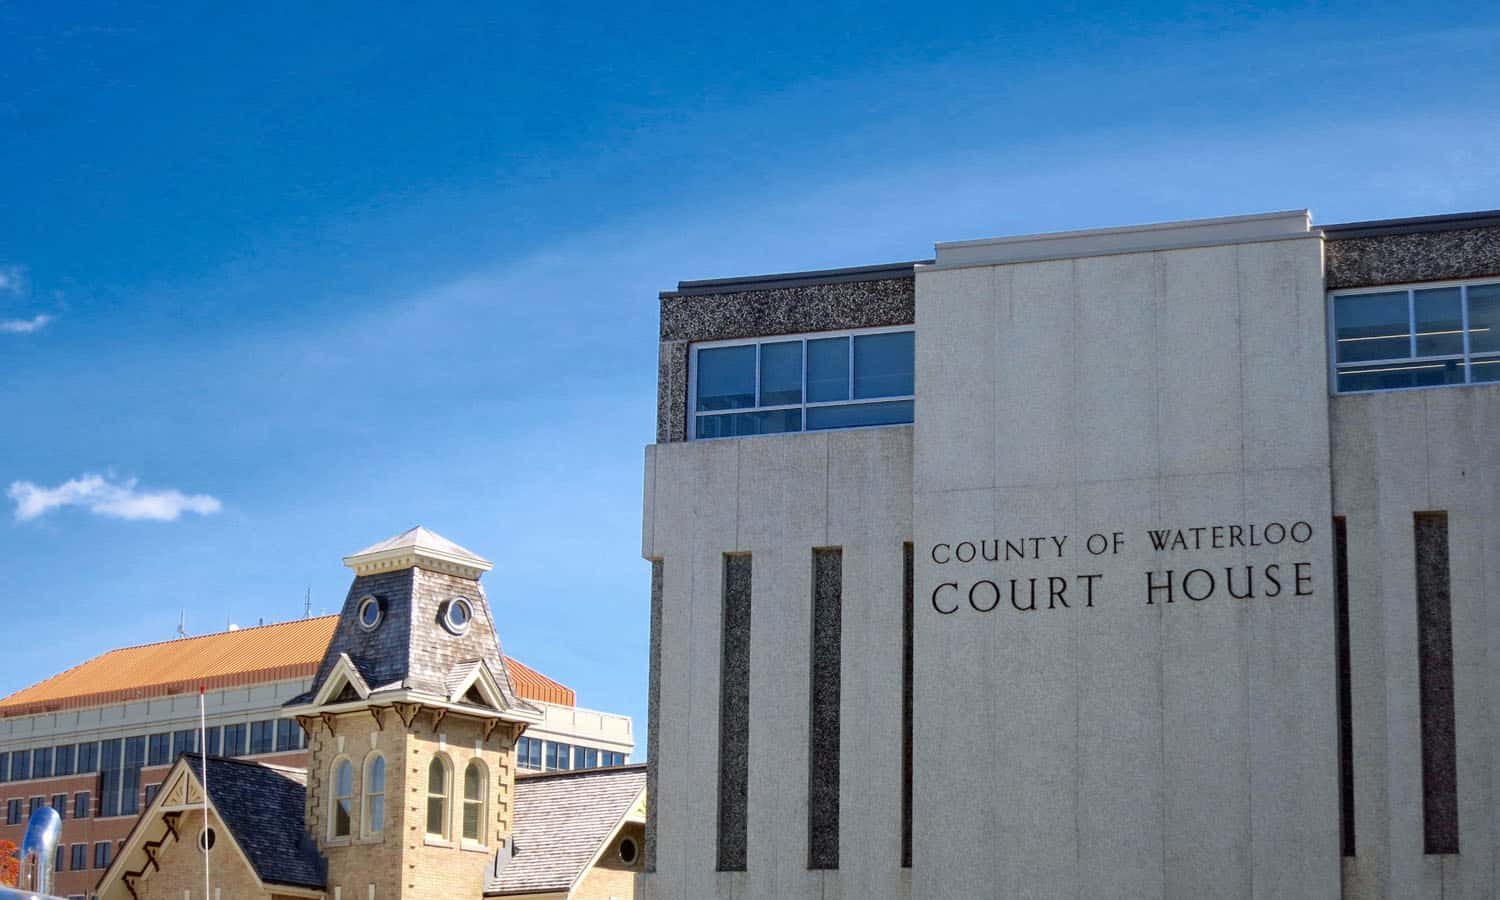 The courthouse is part of a civic precinct with a heterogeneous character